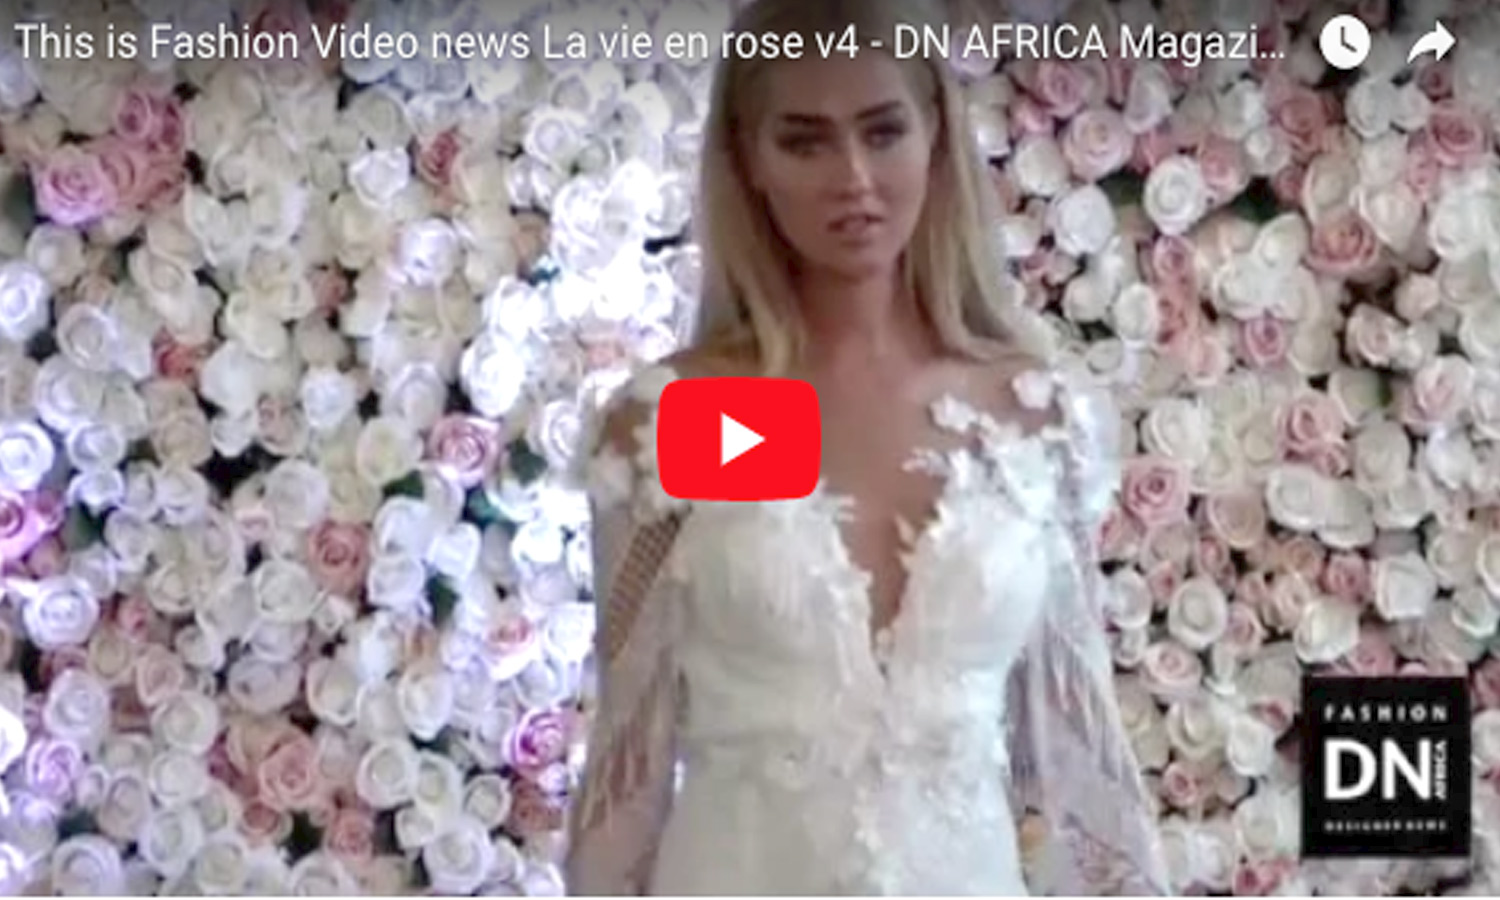 AFRICAN FASHION STYLE MAGAZINE - PFW-FASHION-VIDEOS-LA-VIE-EN-ROSE,-DN-AFRICA-VIDEO - Media Partner DN MAG, DN AFRICA -STUDIO 24 NIGERIA - STUDIO 24 INTERNATIONAL